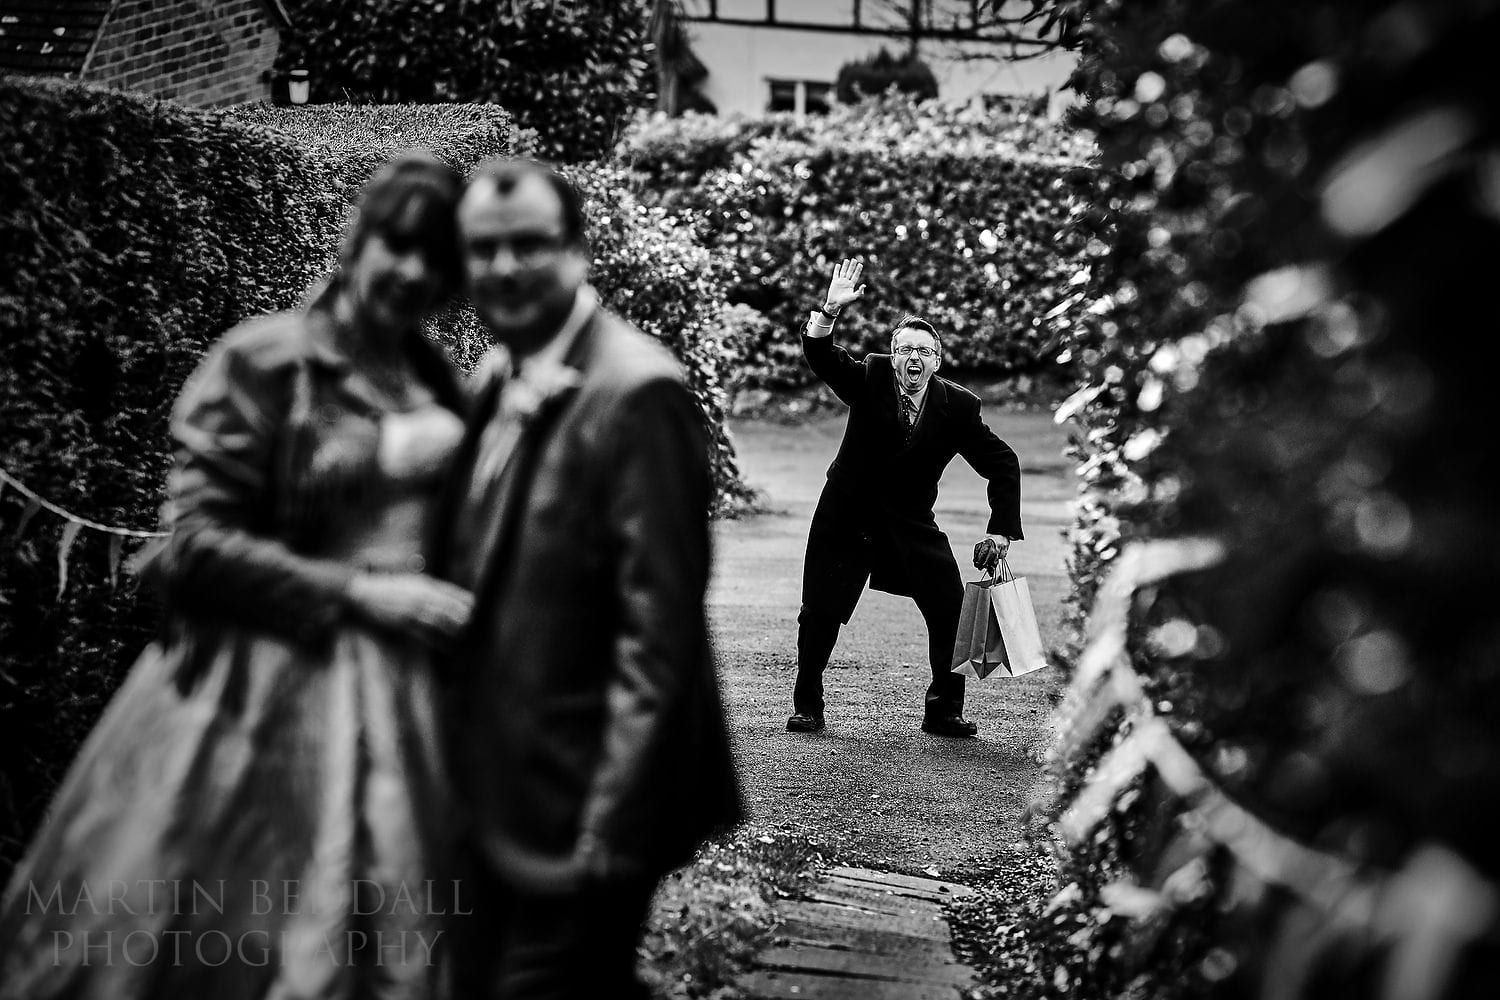 Wedding guest photobombs the couple portrait